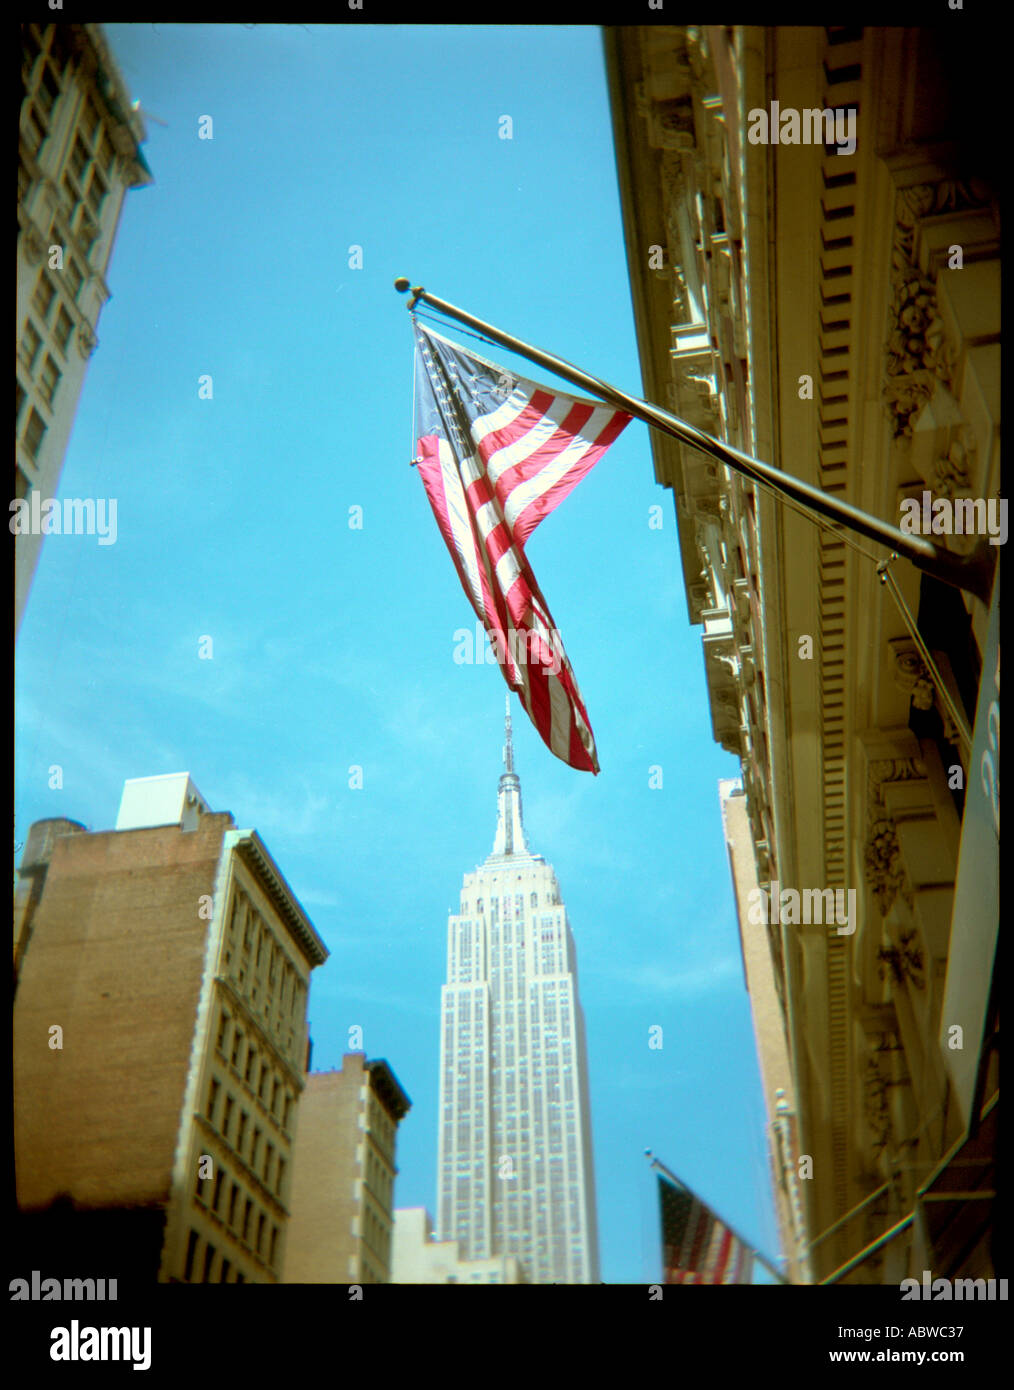 An American flag on 5th Avenue in New York. - Stock Image